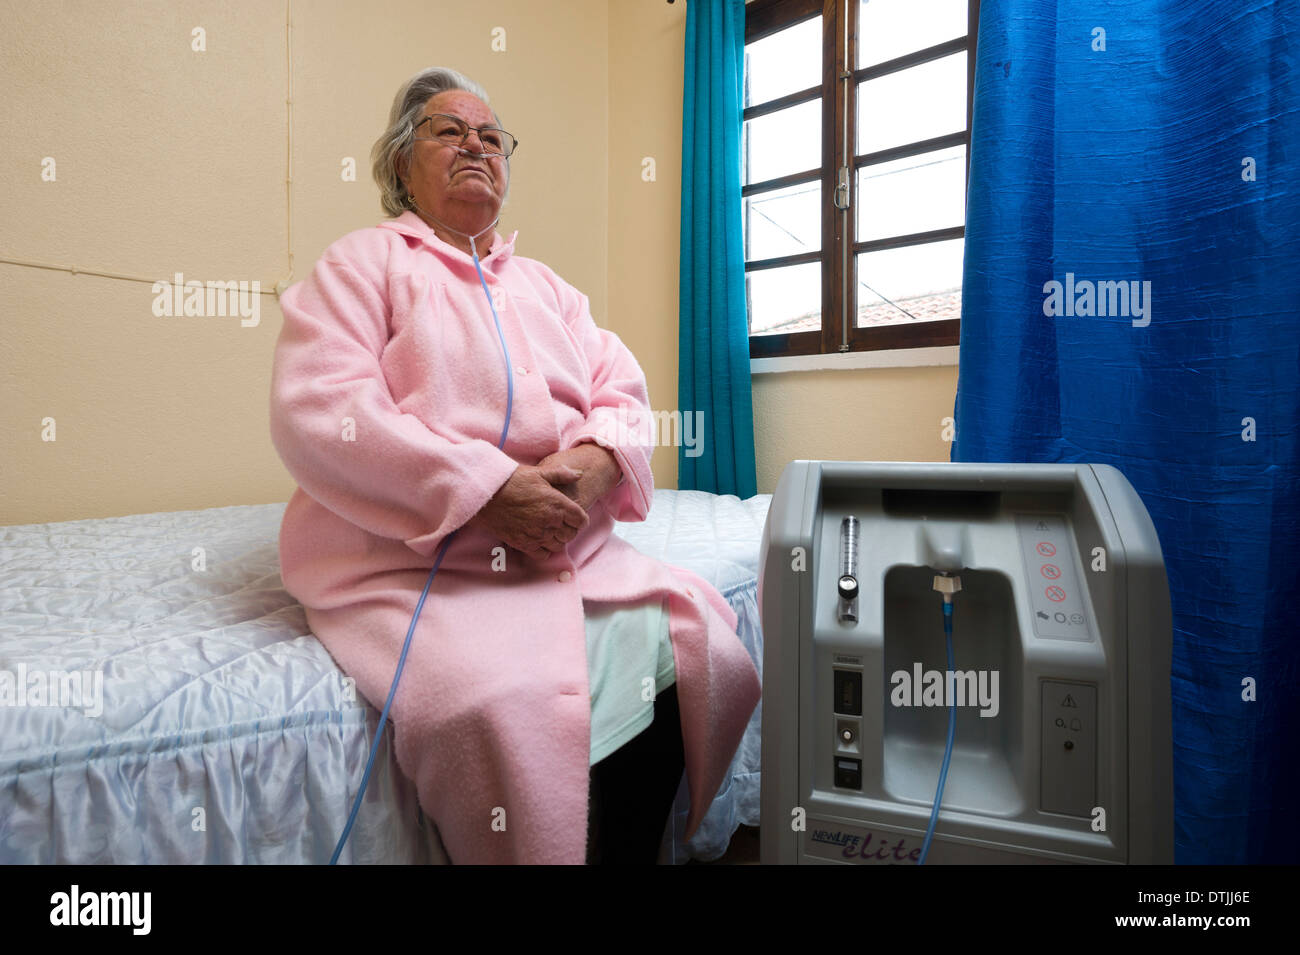 Elderly patient doing oxygen therapy with air machine at home - Stock Image